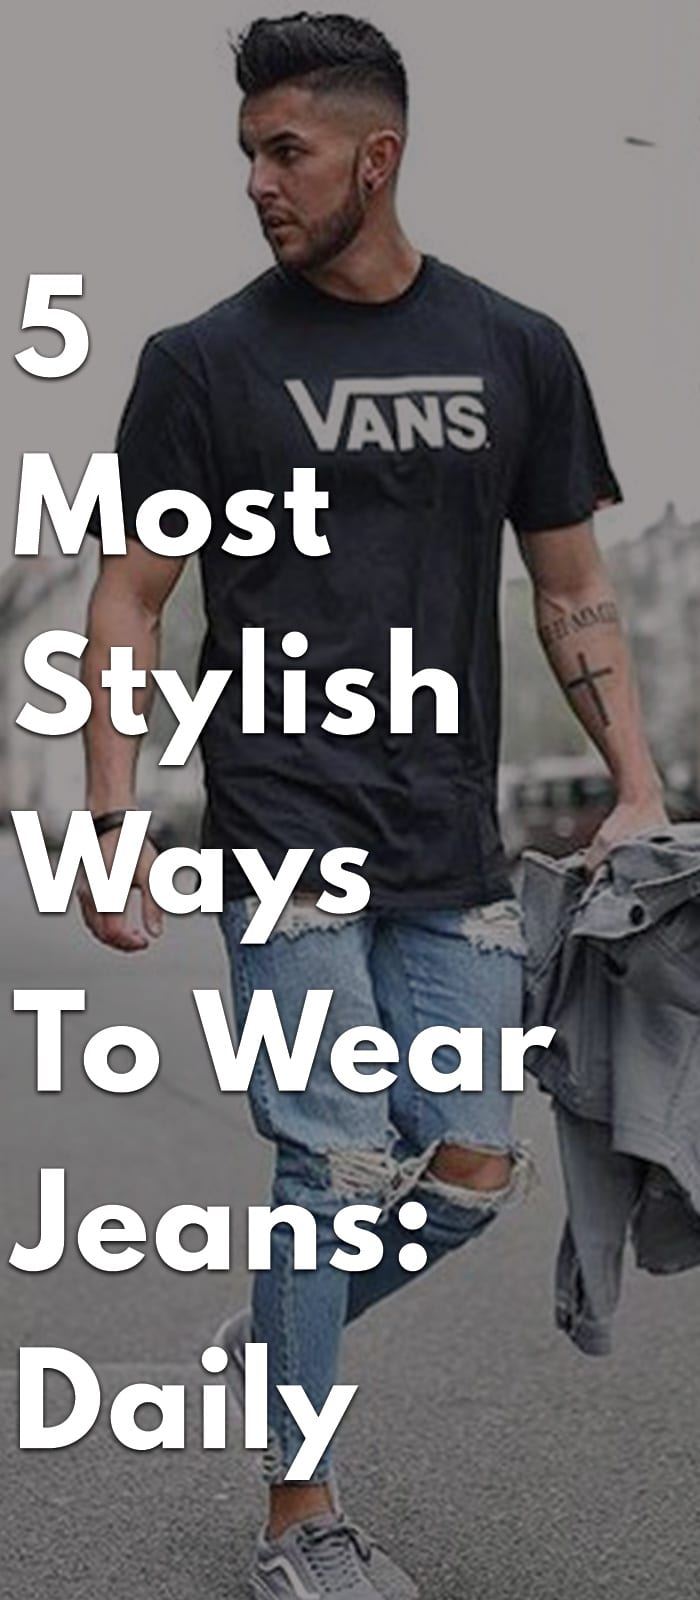 5-Most-Stylish-Ways-To-Wear-Jeans-Daily